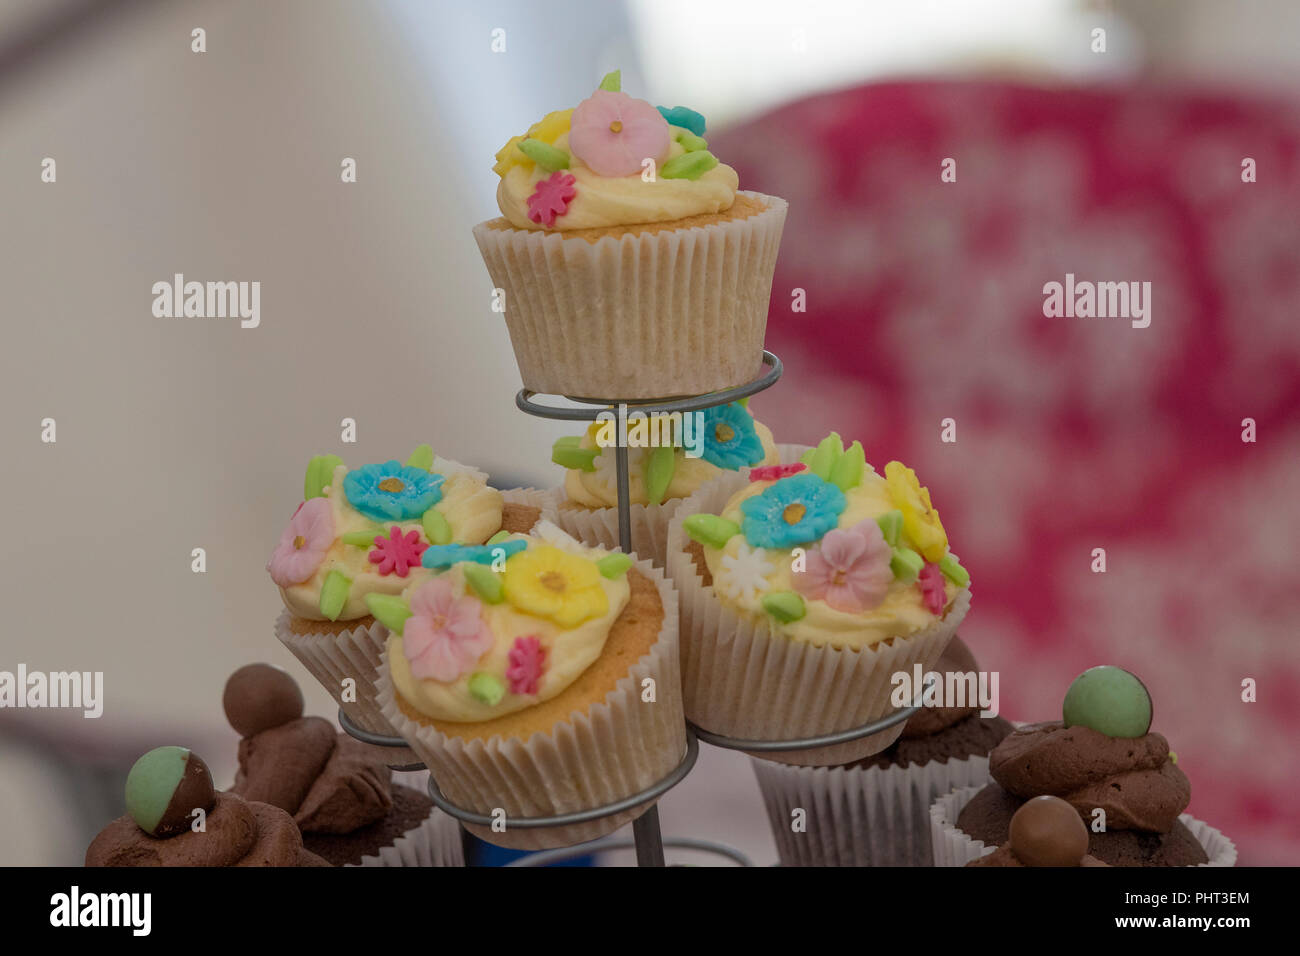 brightly coloured cup cakes decorated on a cake stand Stock Photo